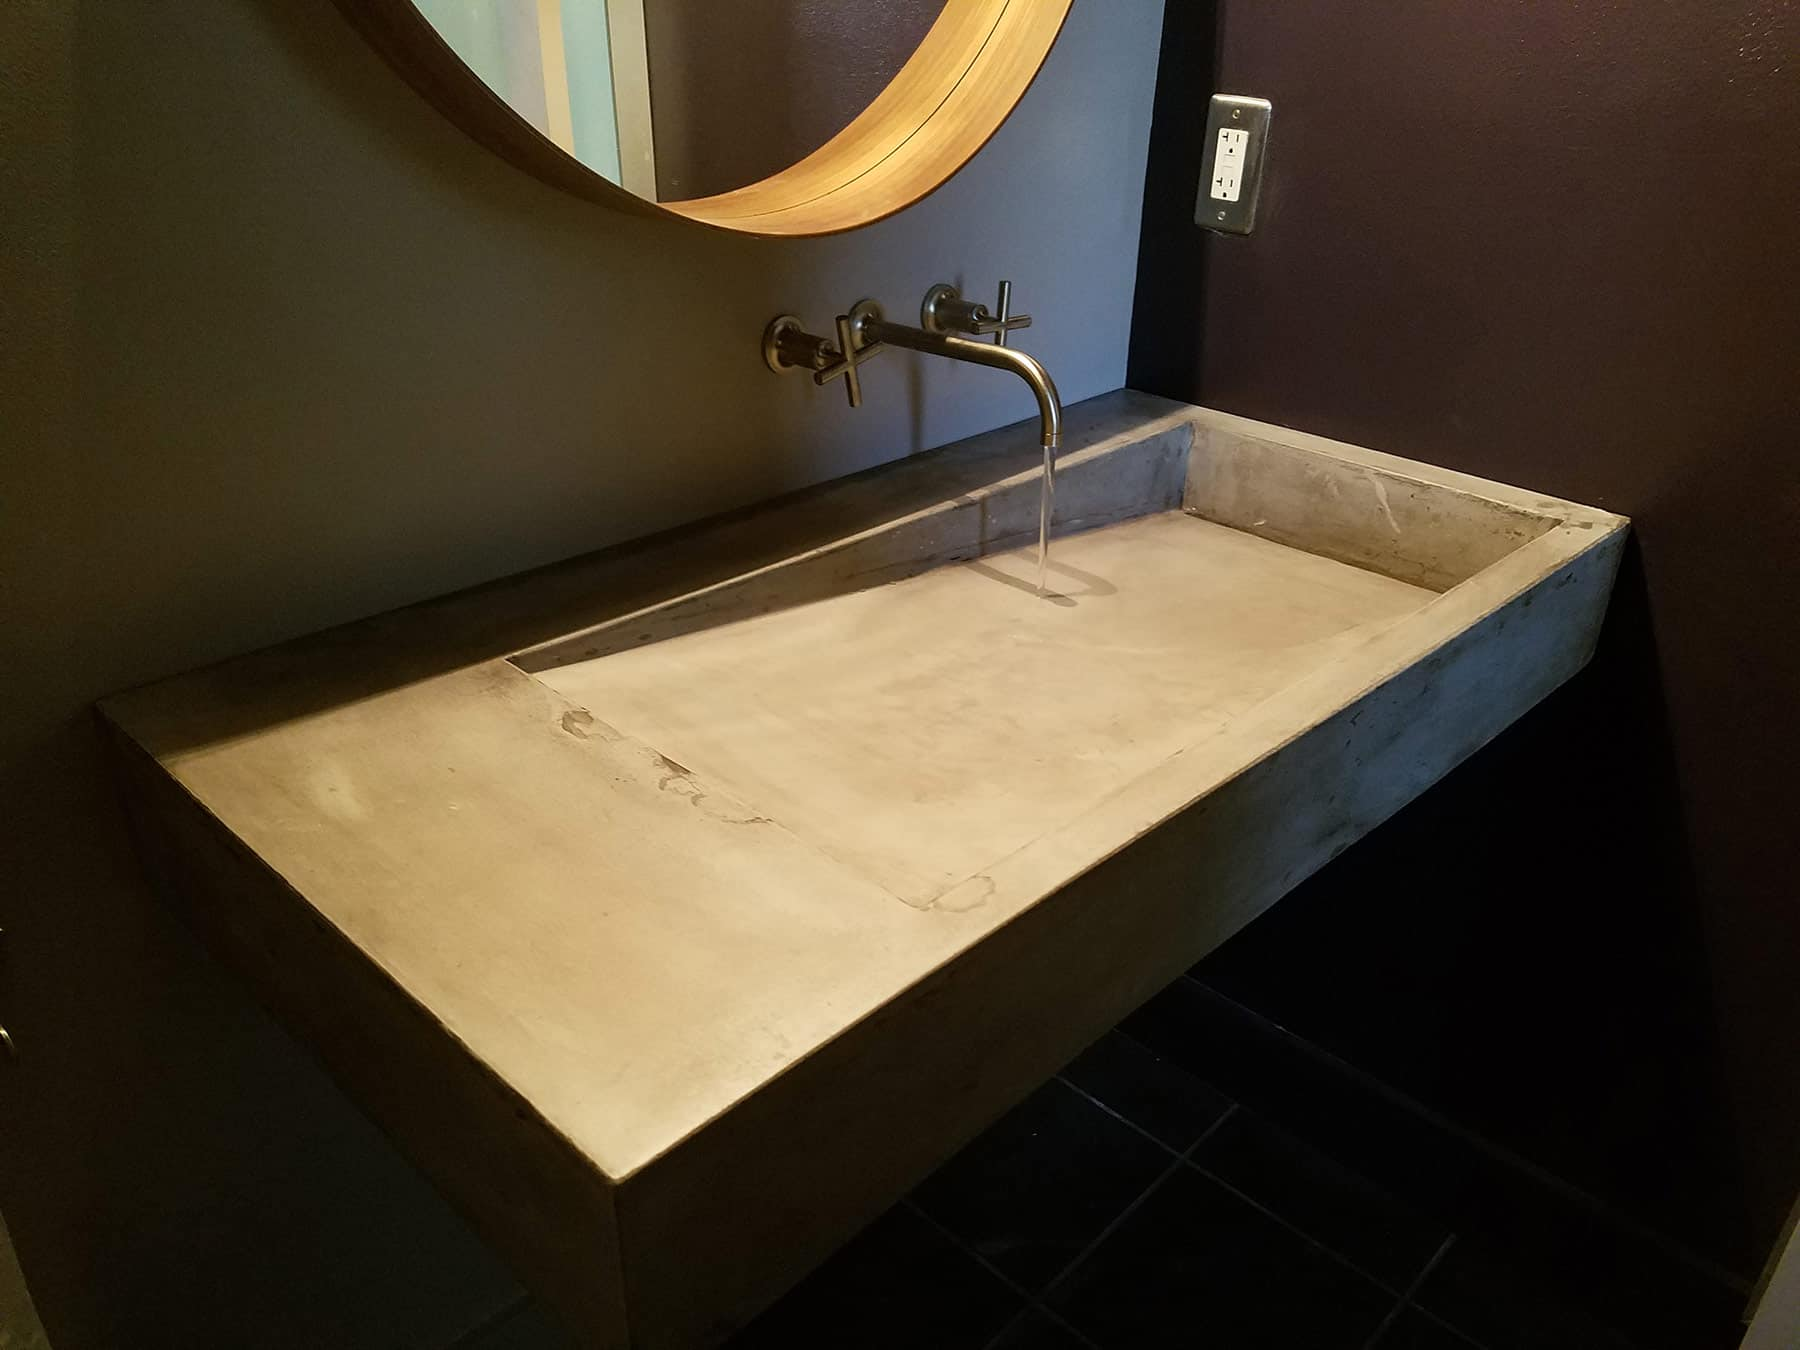 concrete slant sink